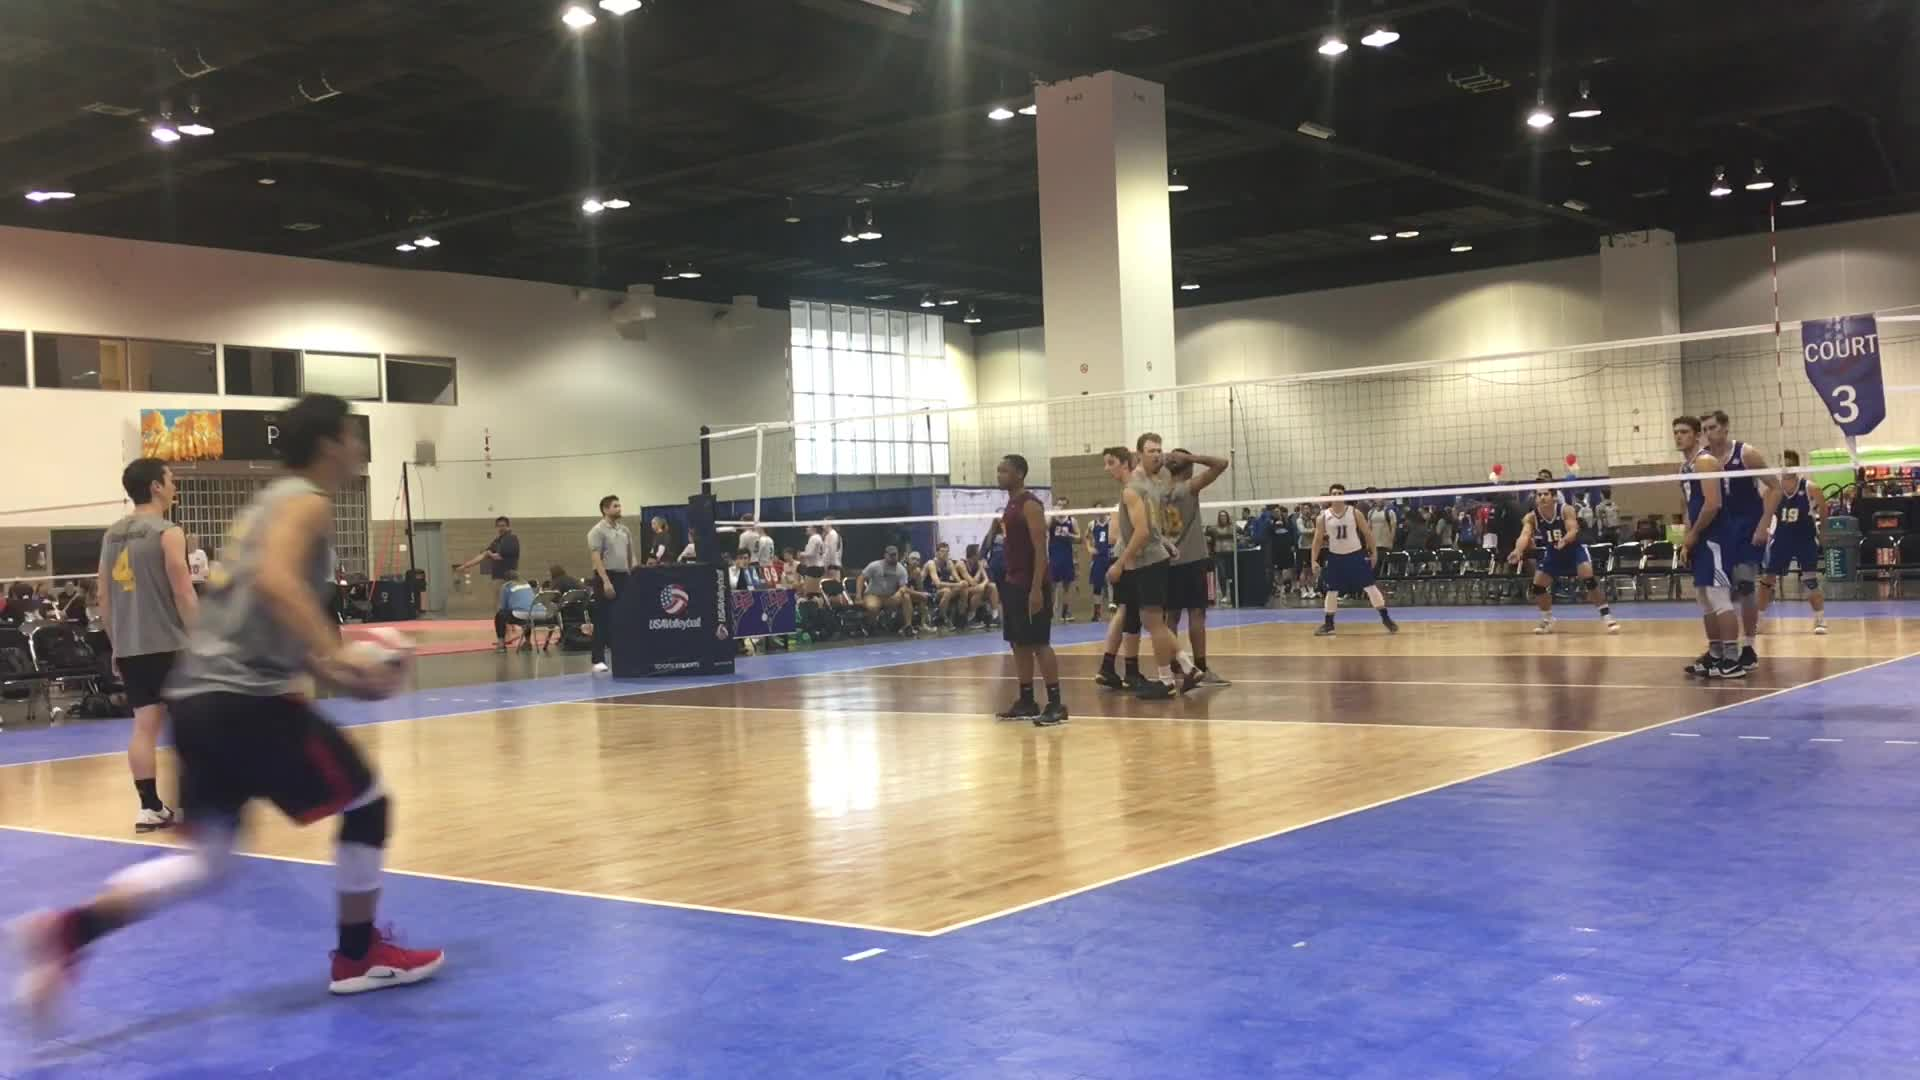 Claremont Colleges Club Volleyball, Sports, Claremont vs Lakers GIFs